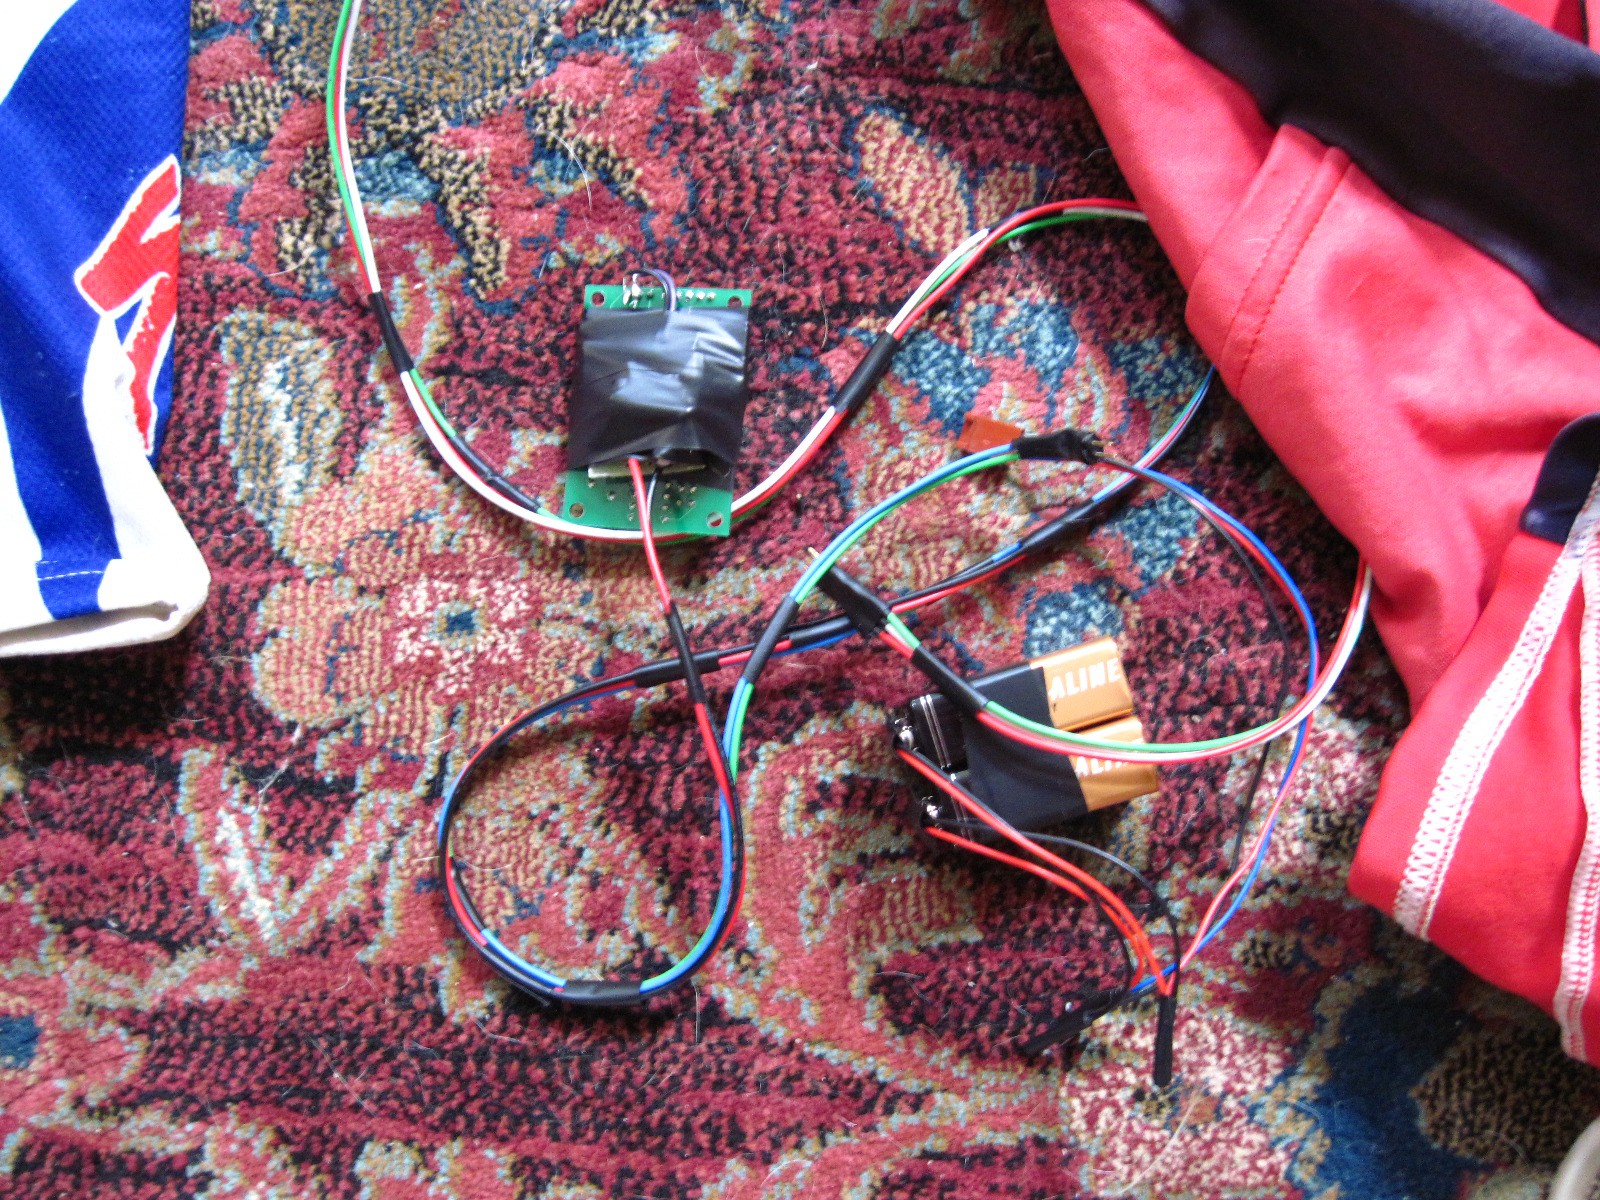 Synthasense Suit Control Stuff With Your Muscles Op Amp Opamps In A Loop Electrical Engineering Stack Exchange I Also Wasnt Fond Of The Signal Strength Was Getting Through Advancer Board So Built My Own Electrode Basic Opamp Amplifier Configuration